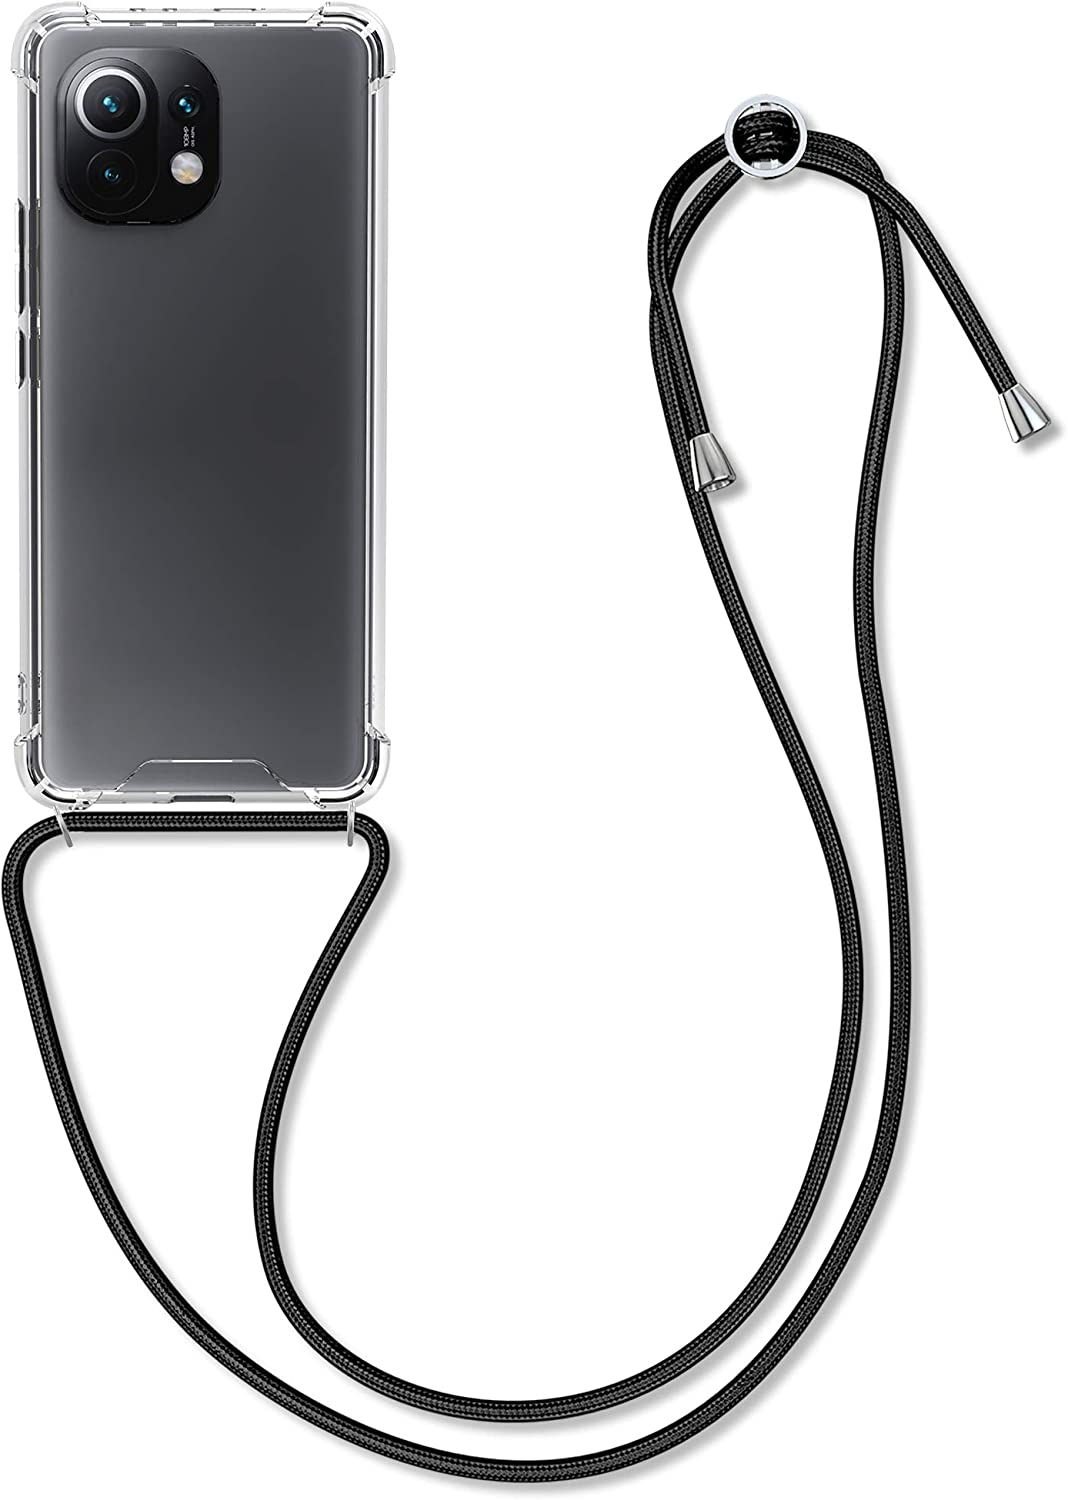 kwmobile Crossbody Case Compatible with Xiaomi Mi 11 - Case Clear TPU Phone Cover w/Lanyard Cord Strap - Black/Transparent